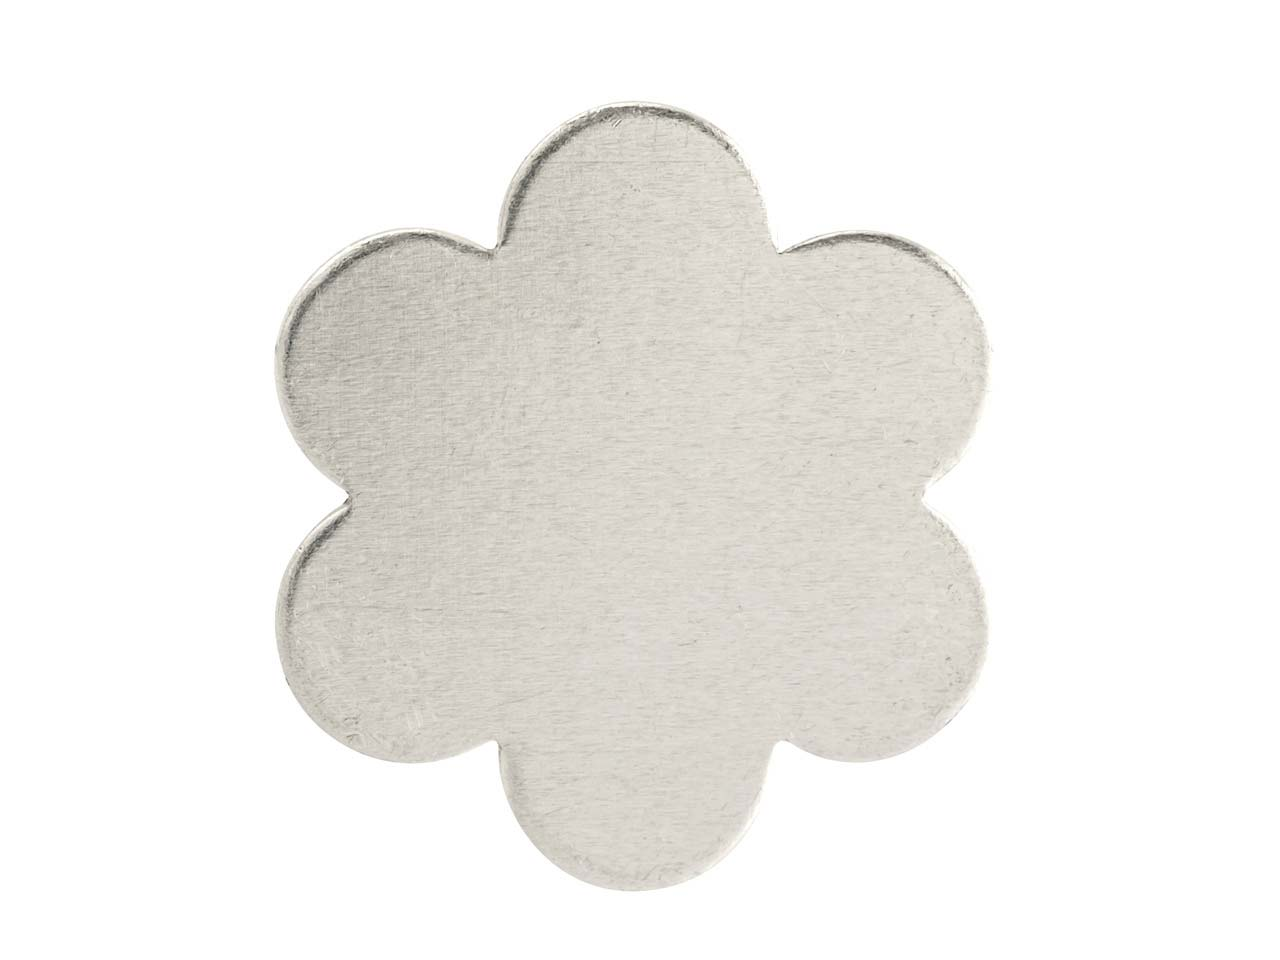 Impressart Aluminium Blanks Daisy  25.4mm X 0.8mm, Pack of 16